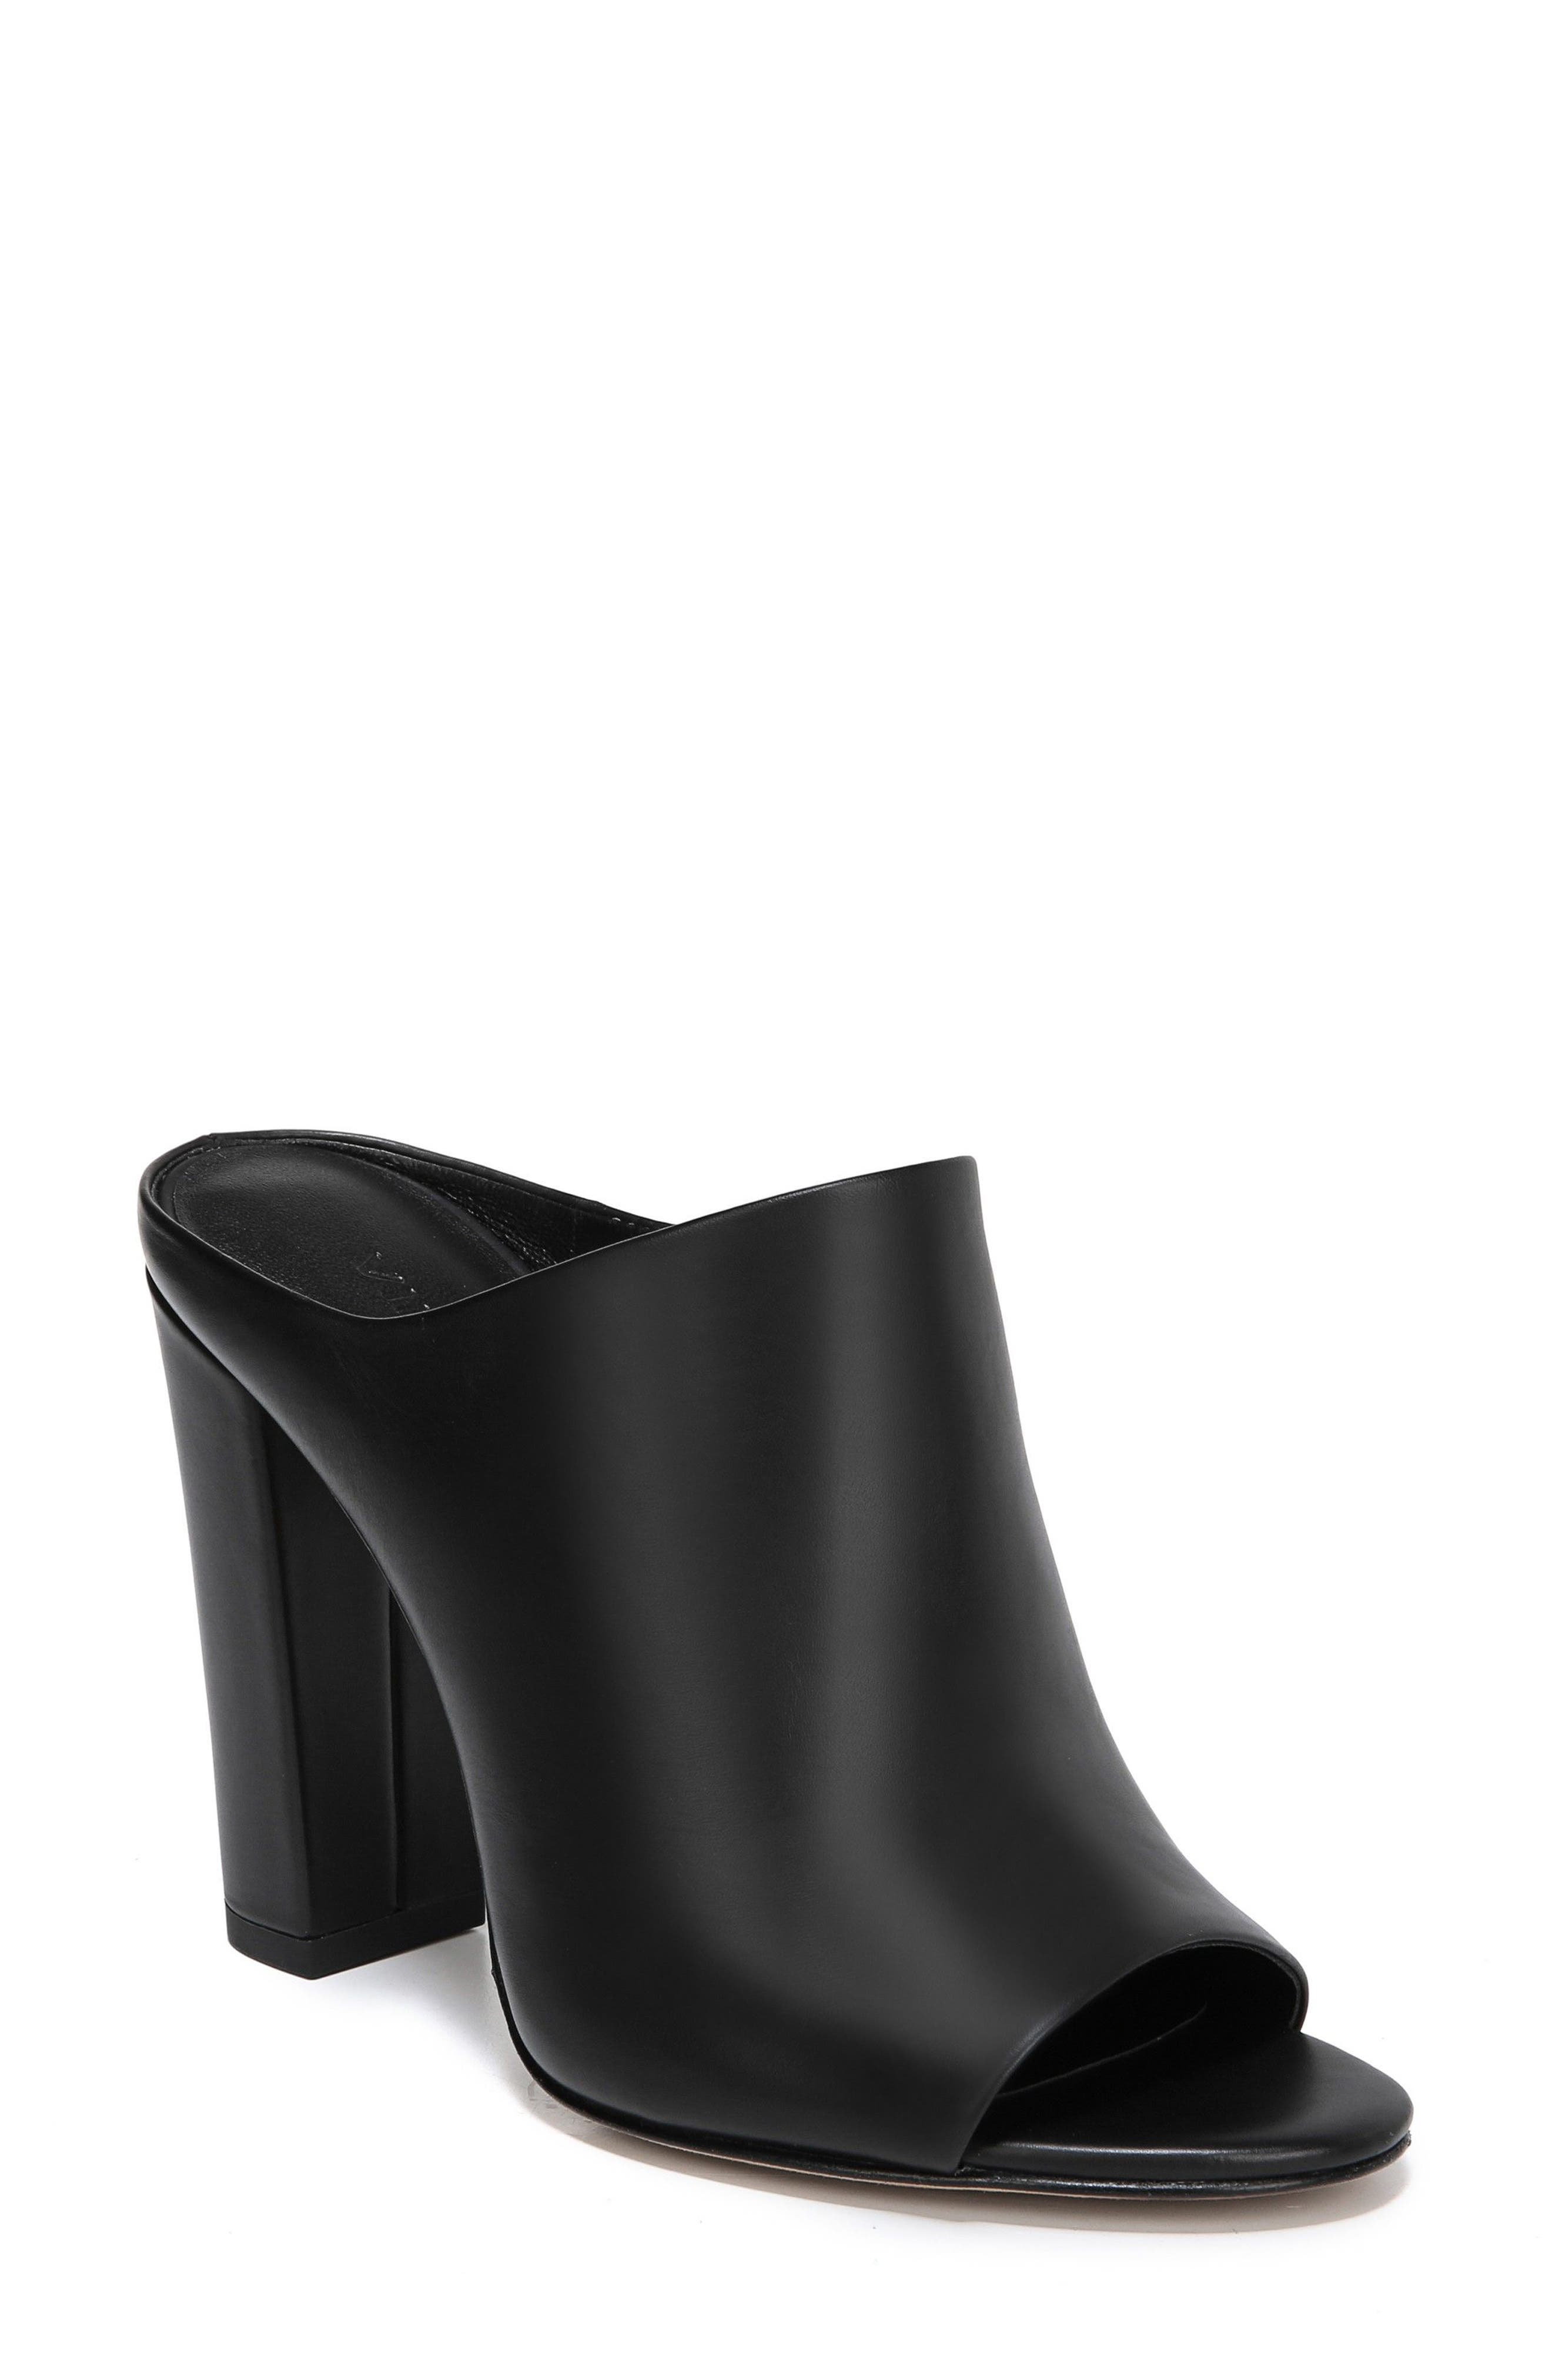 Alora Mule,                         Main,                         color, BLACK